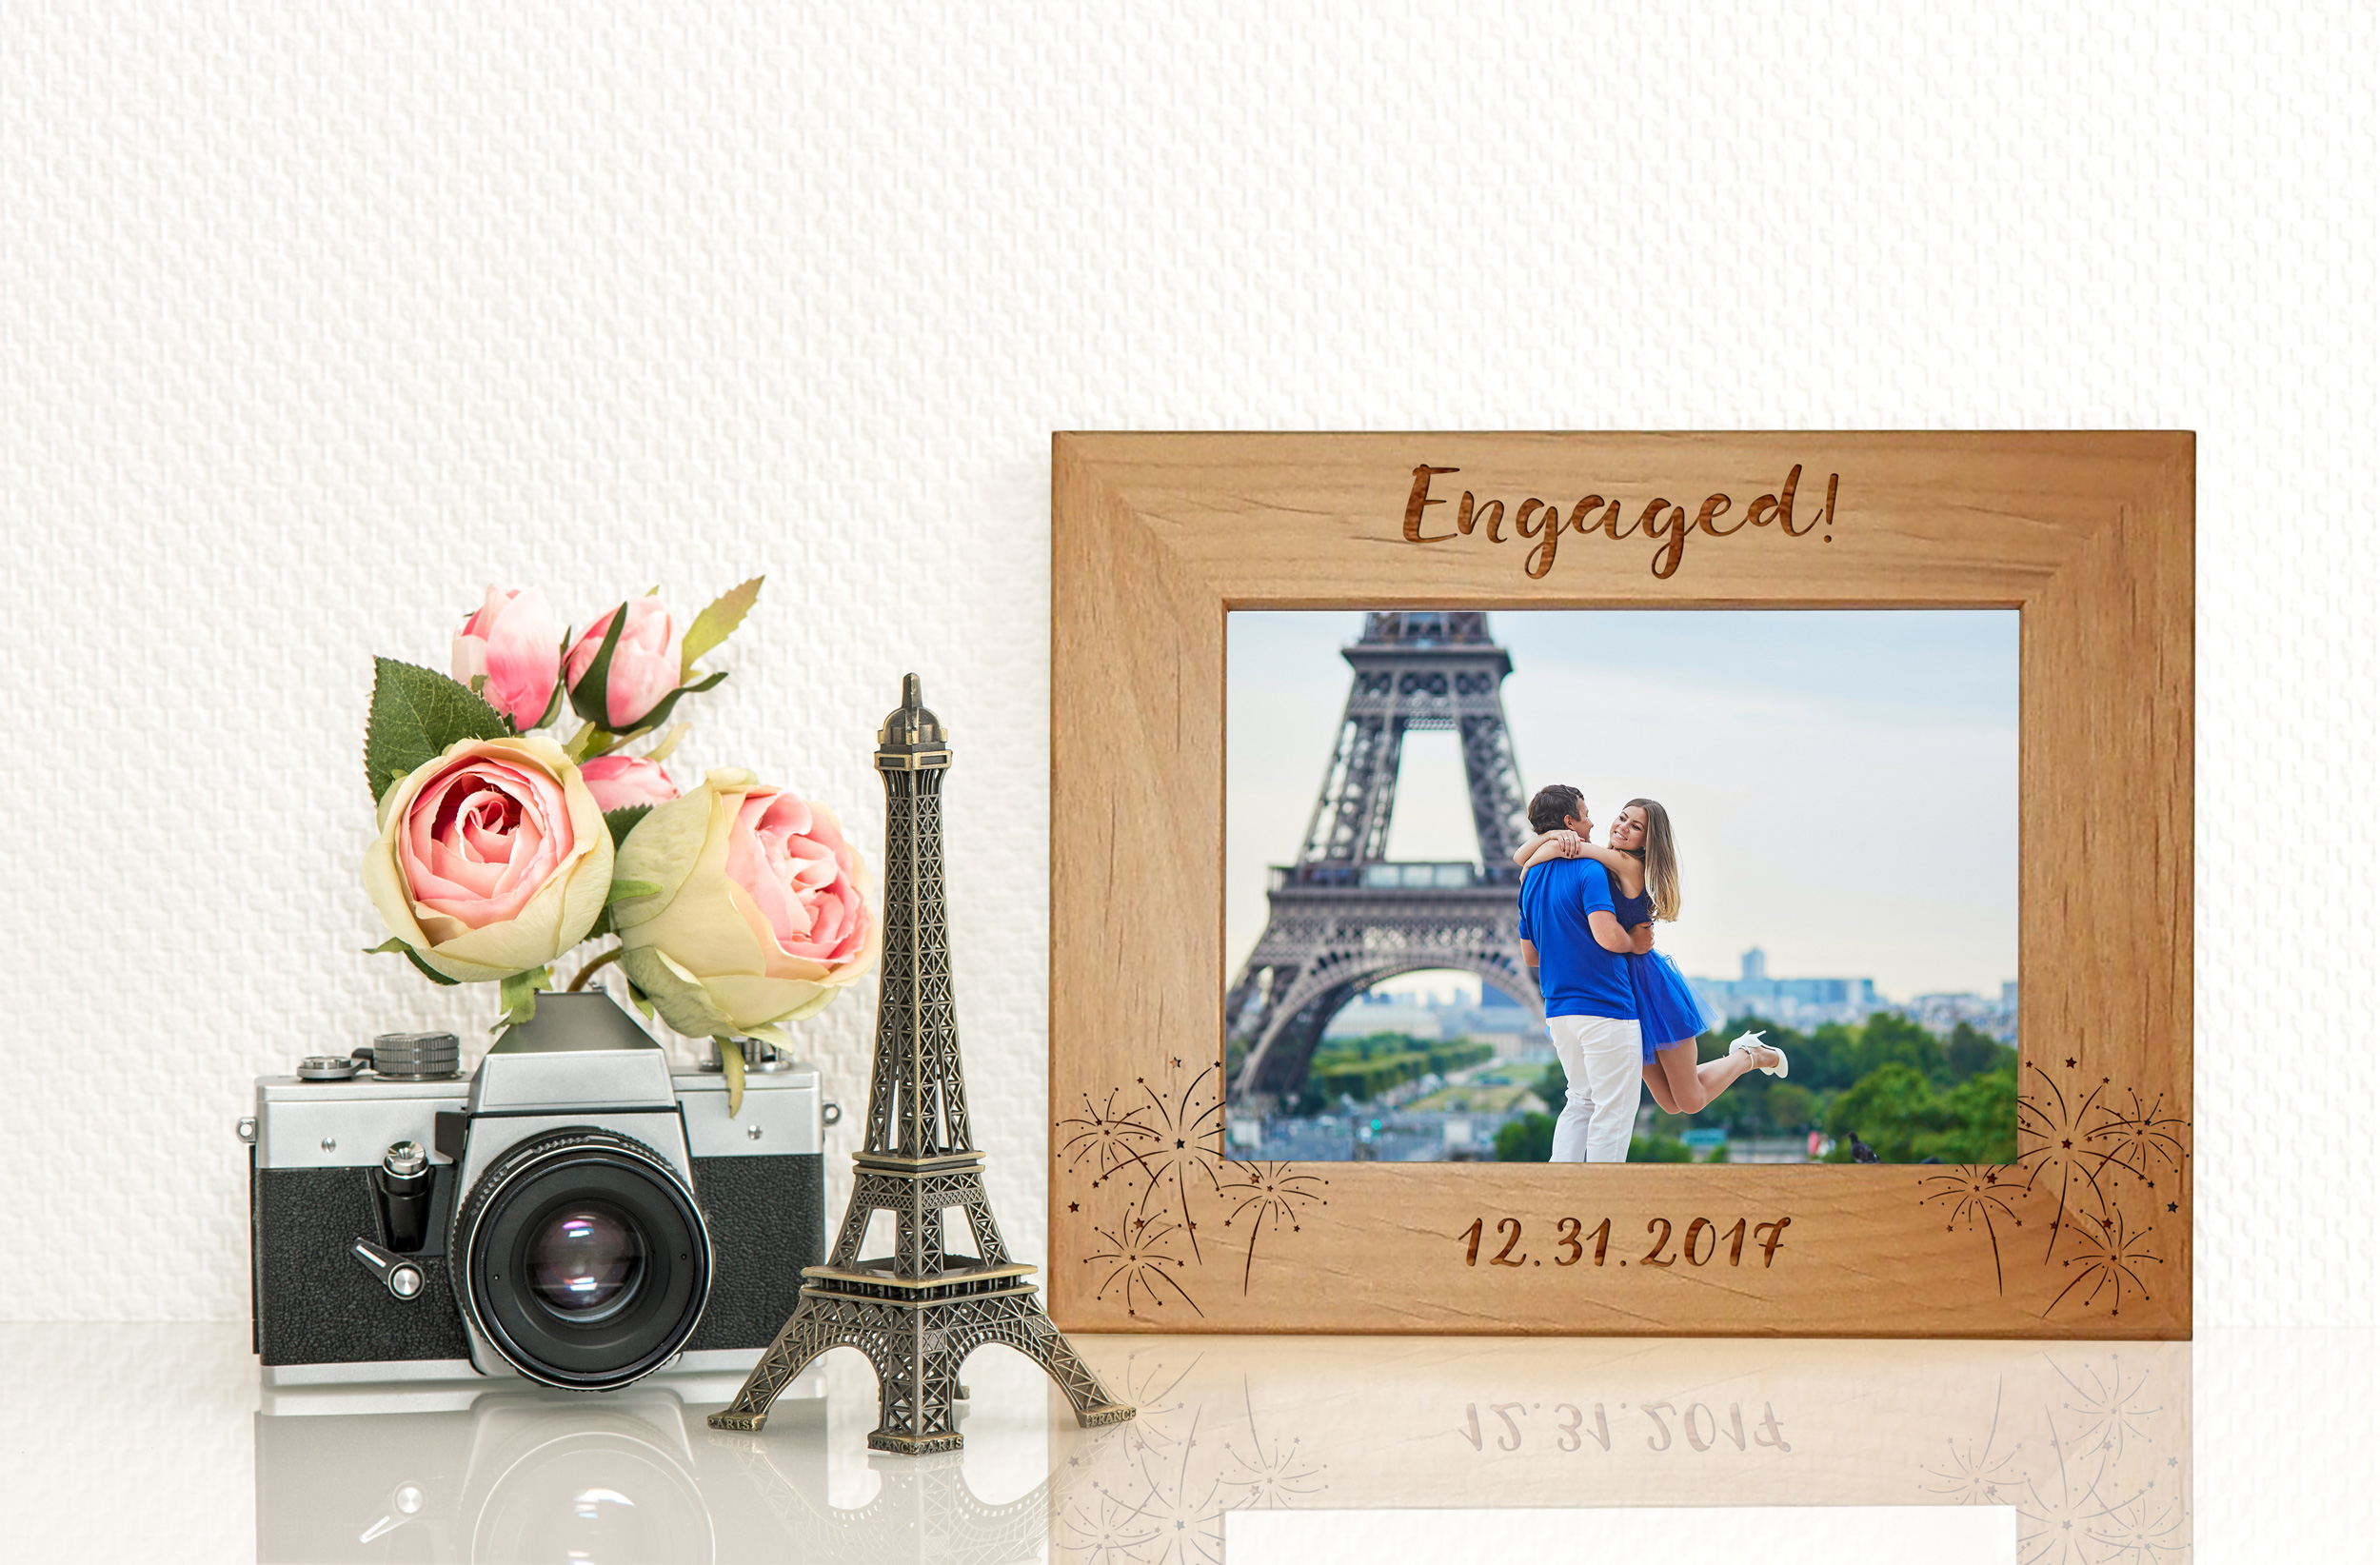 fireworks engagement personalized frame